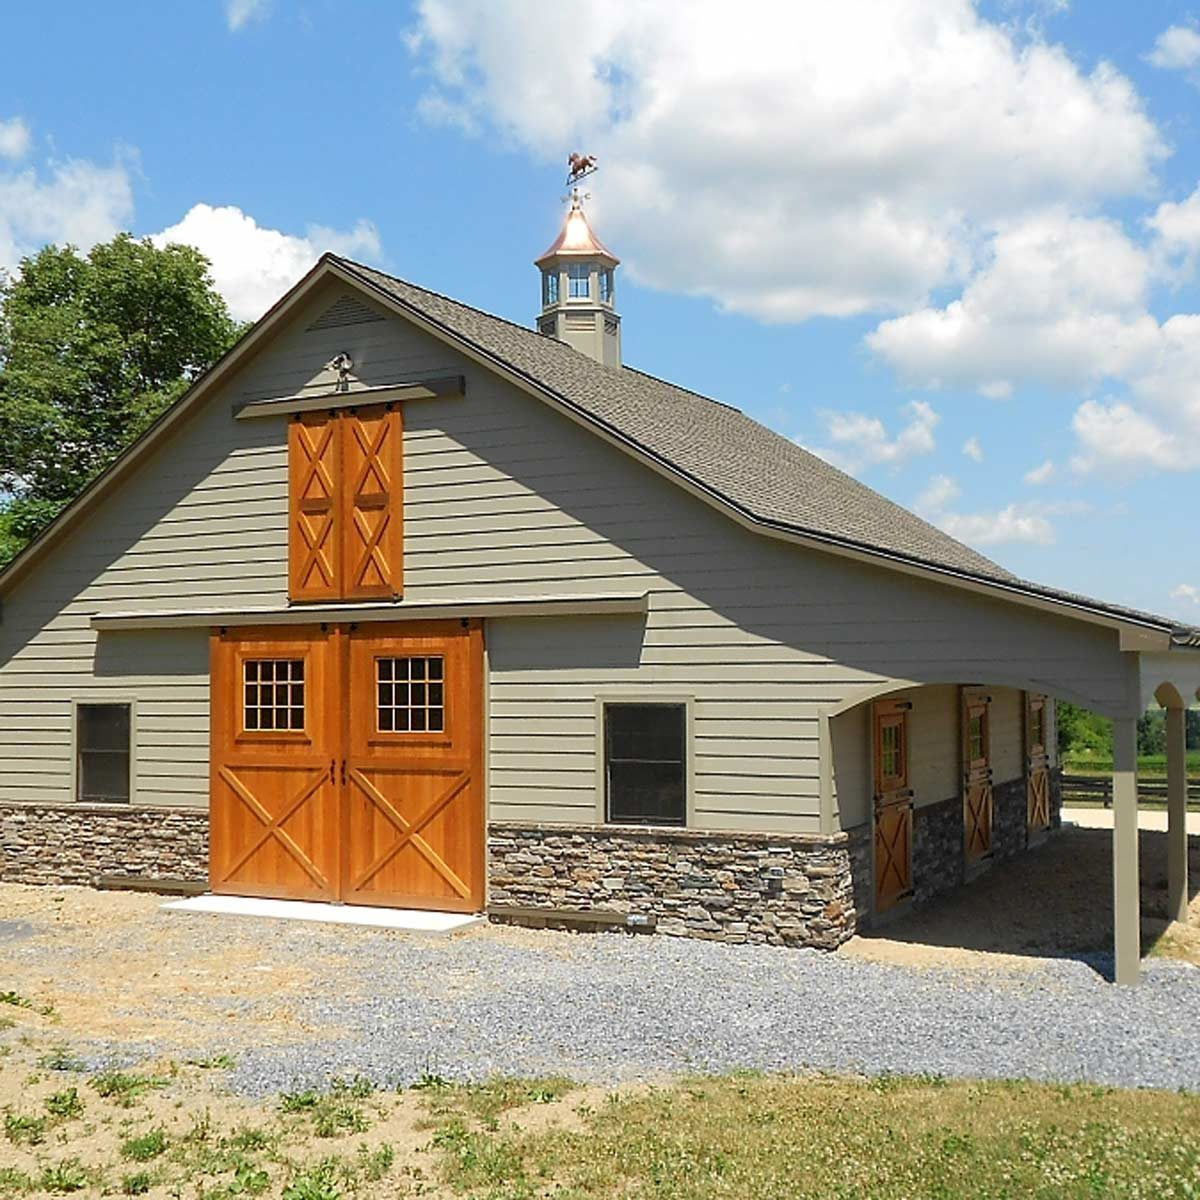 10 Houses with Incredible Stables | Family Handyman